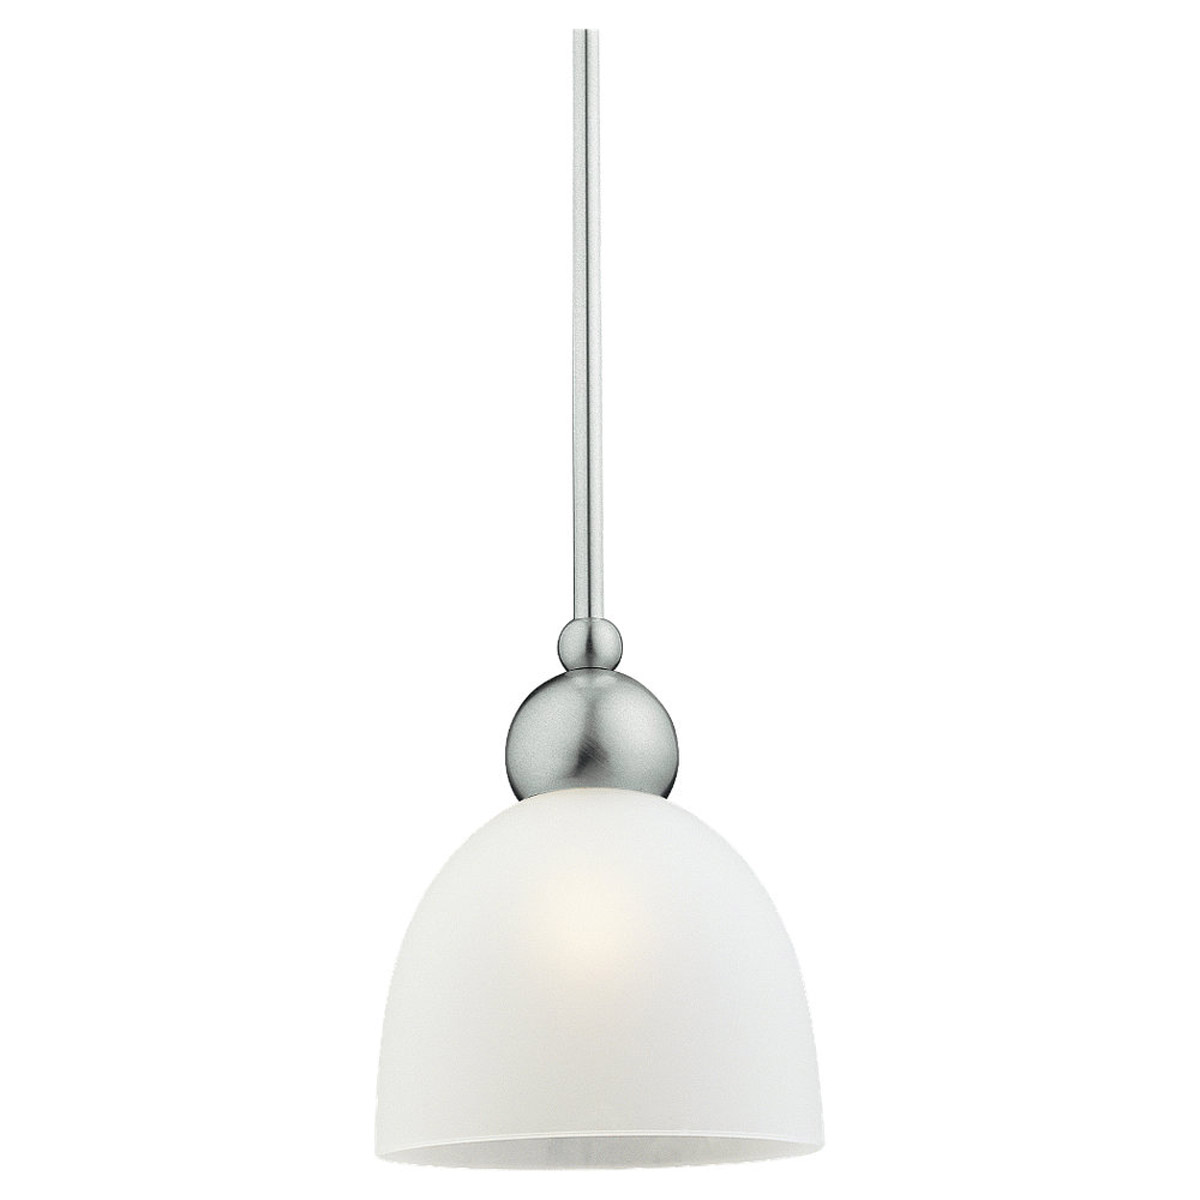 Sea Gull Lighting Metropolis 1 Light Mini Pendant in Brushed Nickel 61035-962 photo